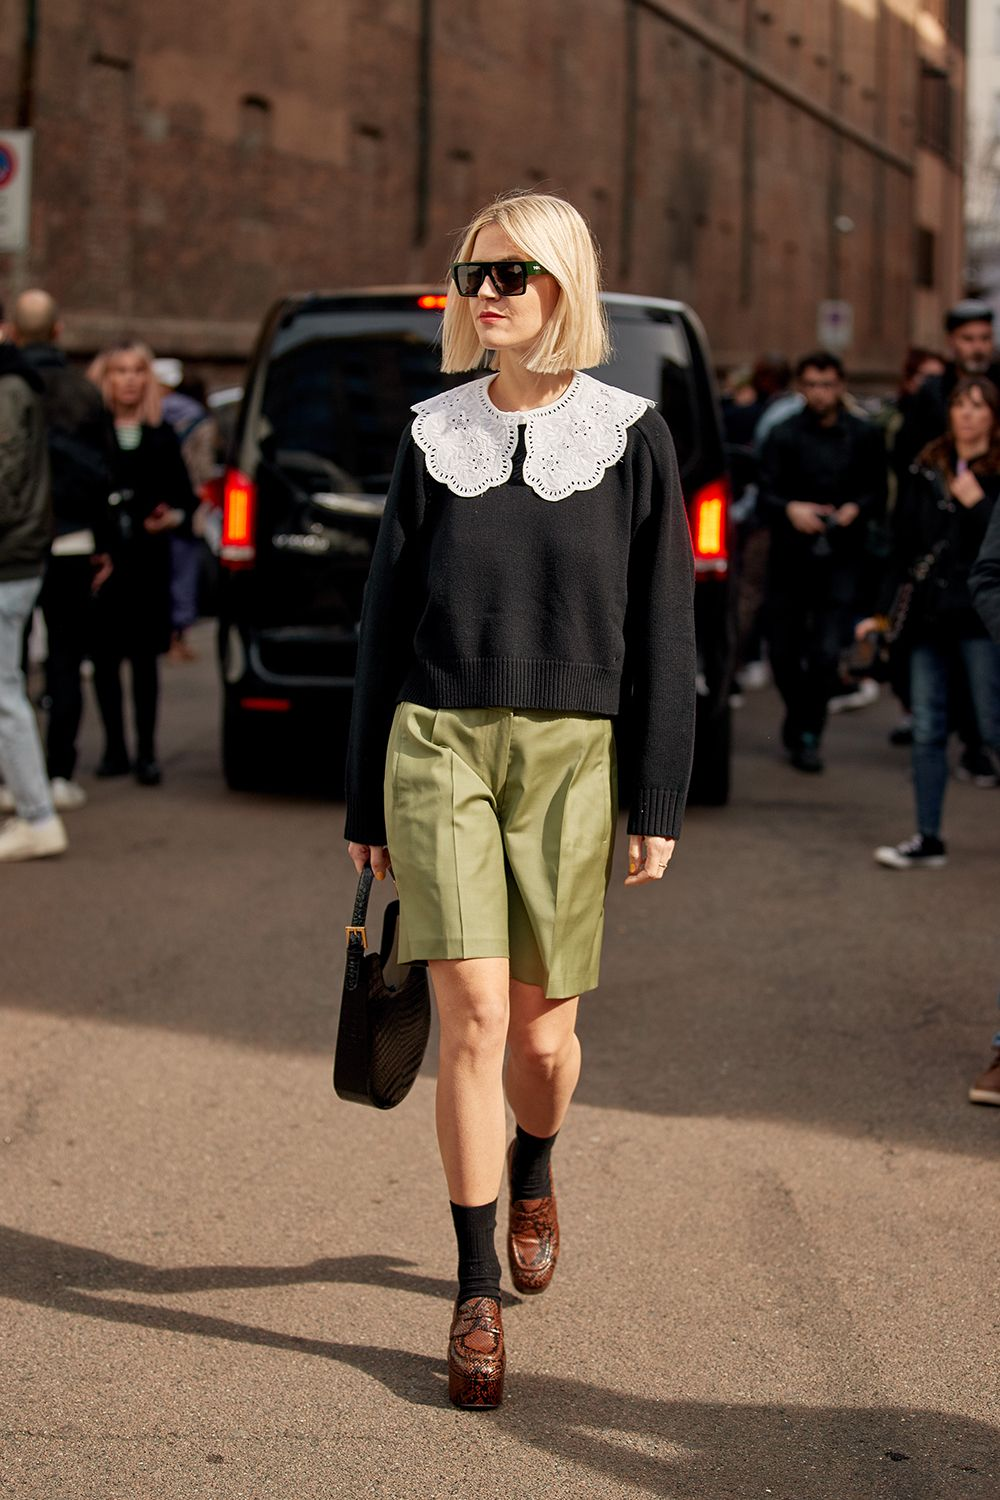 The Cult Pieces We've Seen All Over the Streets of Fashion Week